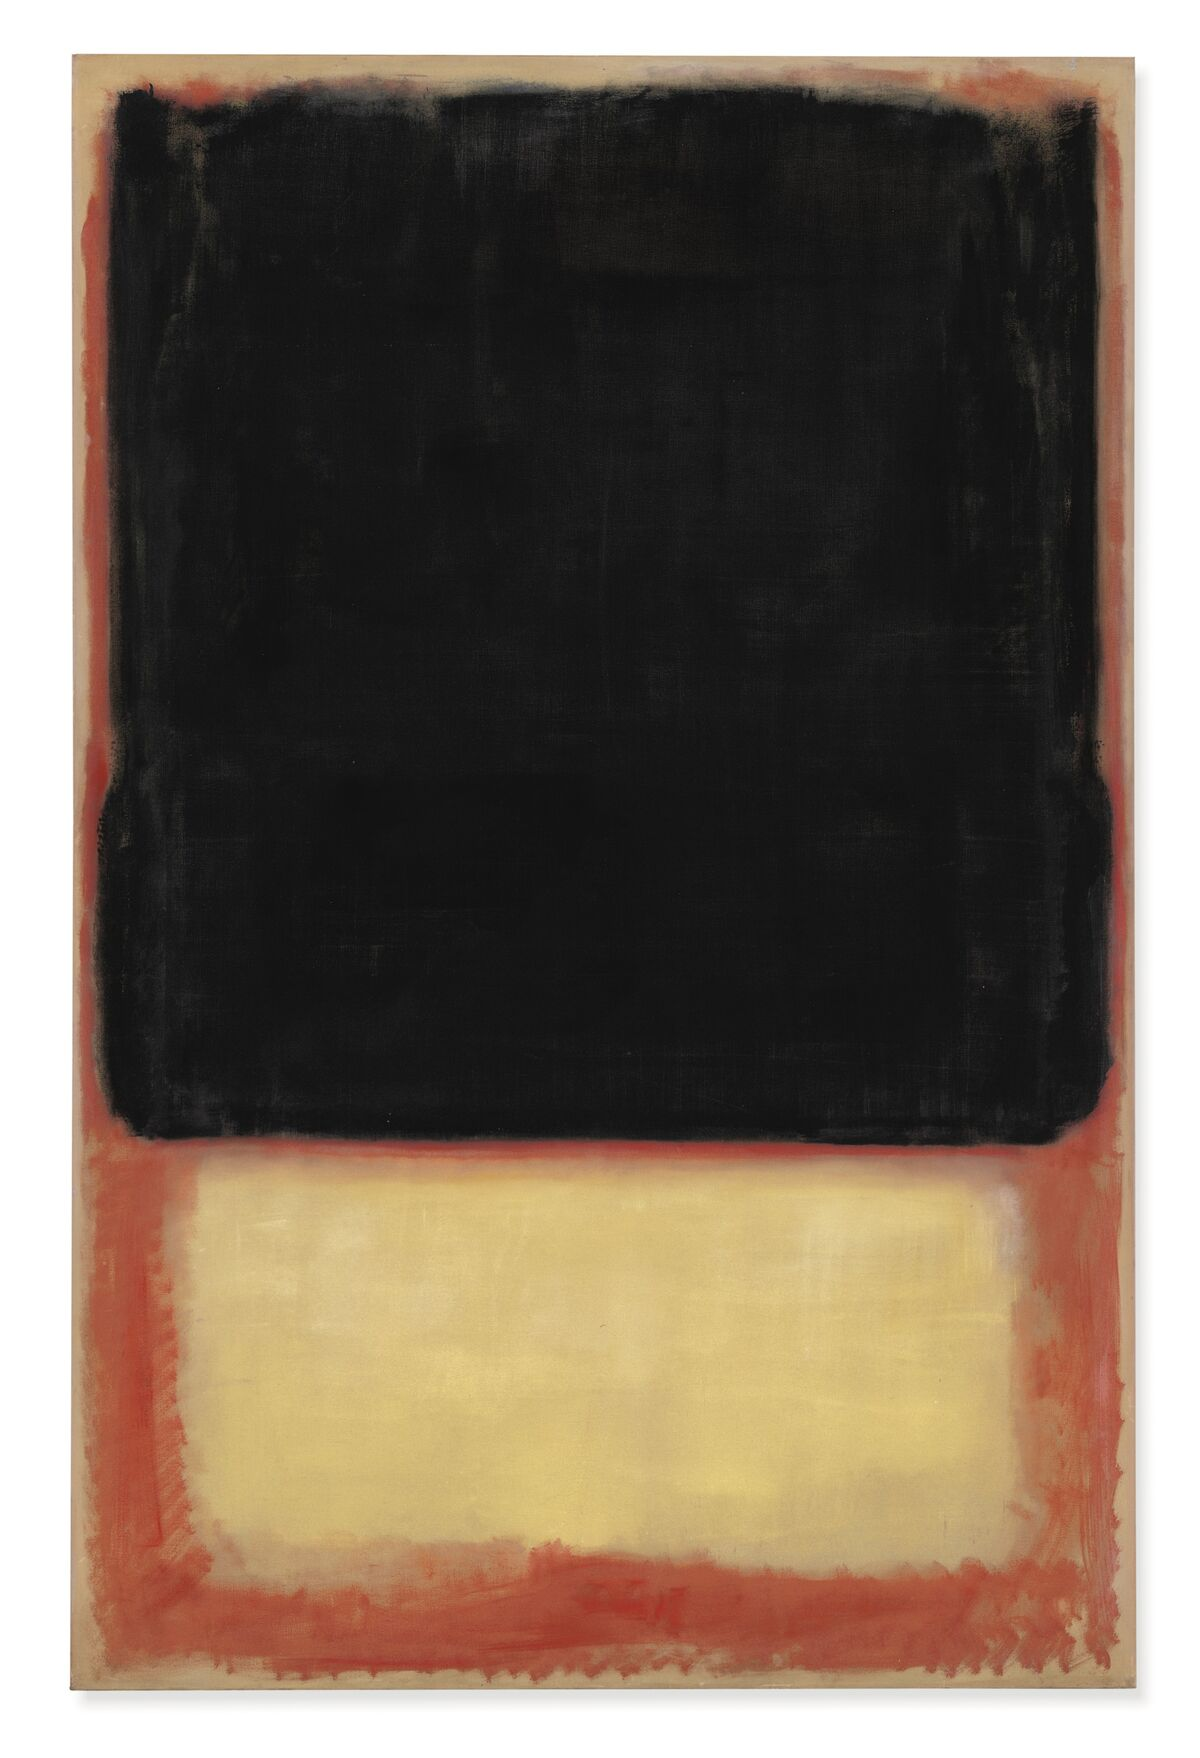 Mark Rothko, No. 7 (Dark Over Light), 1954. Courtesy of Christie's.